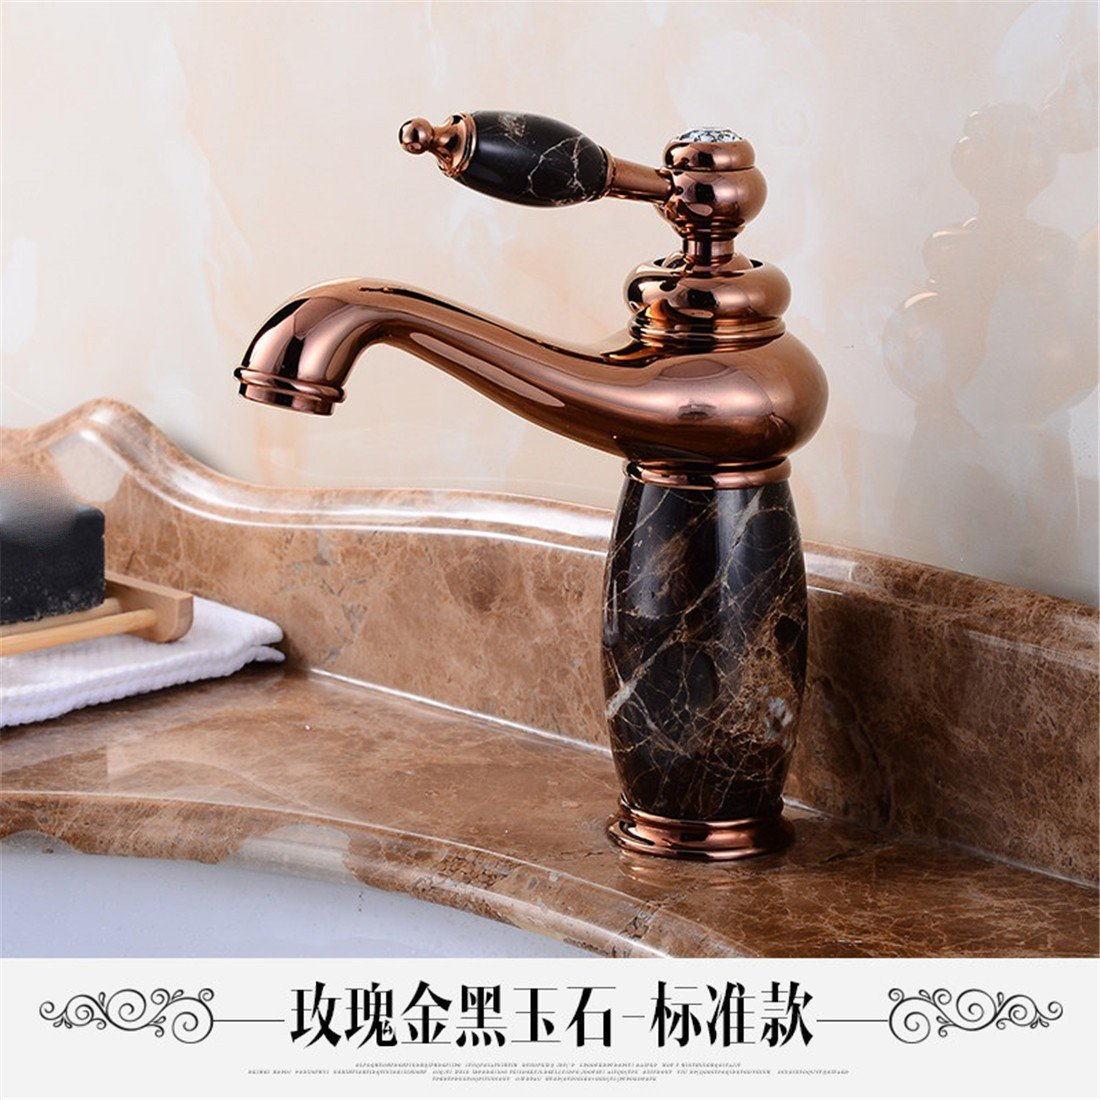 8 LHbox Basin Mixer Tap Bathroom Sink Faucet Continental jade faucet marble washbasins pink gold basin full copper golden basin of hot and cold taps, God light blond white jade